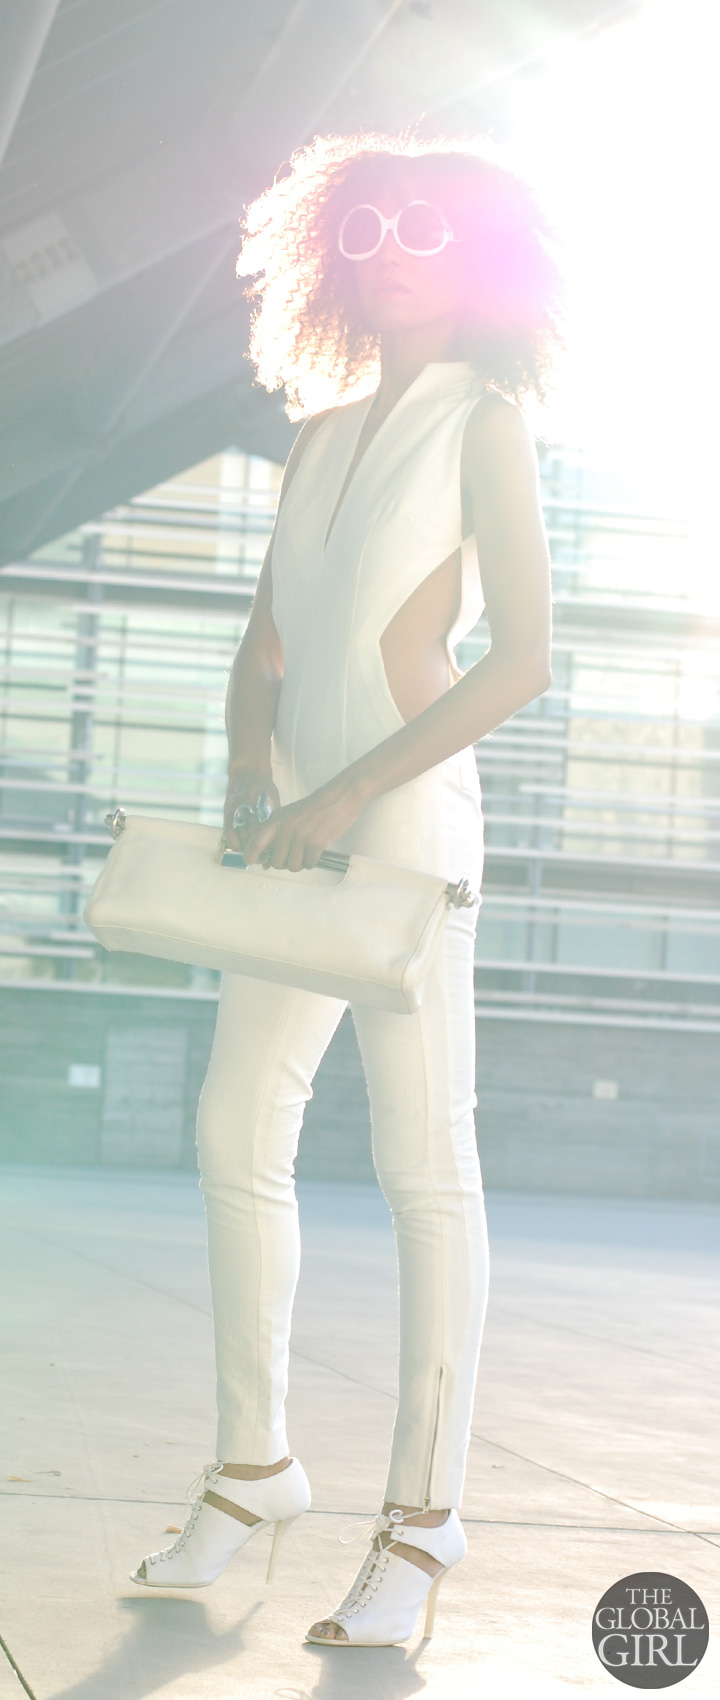 The Global Girl Fashion Editorials: Ndoema rocks the all-white look: cut out jumpsuit from Son Jung Wang Spring 2014 runway collection   White frame oversized sunglasses by Balenciaga   White cutout lace-up sandals by Helmut Lang   White leather bag by Prada.